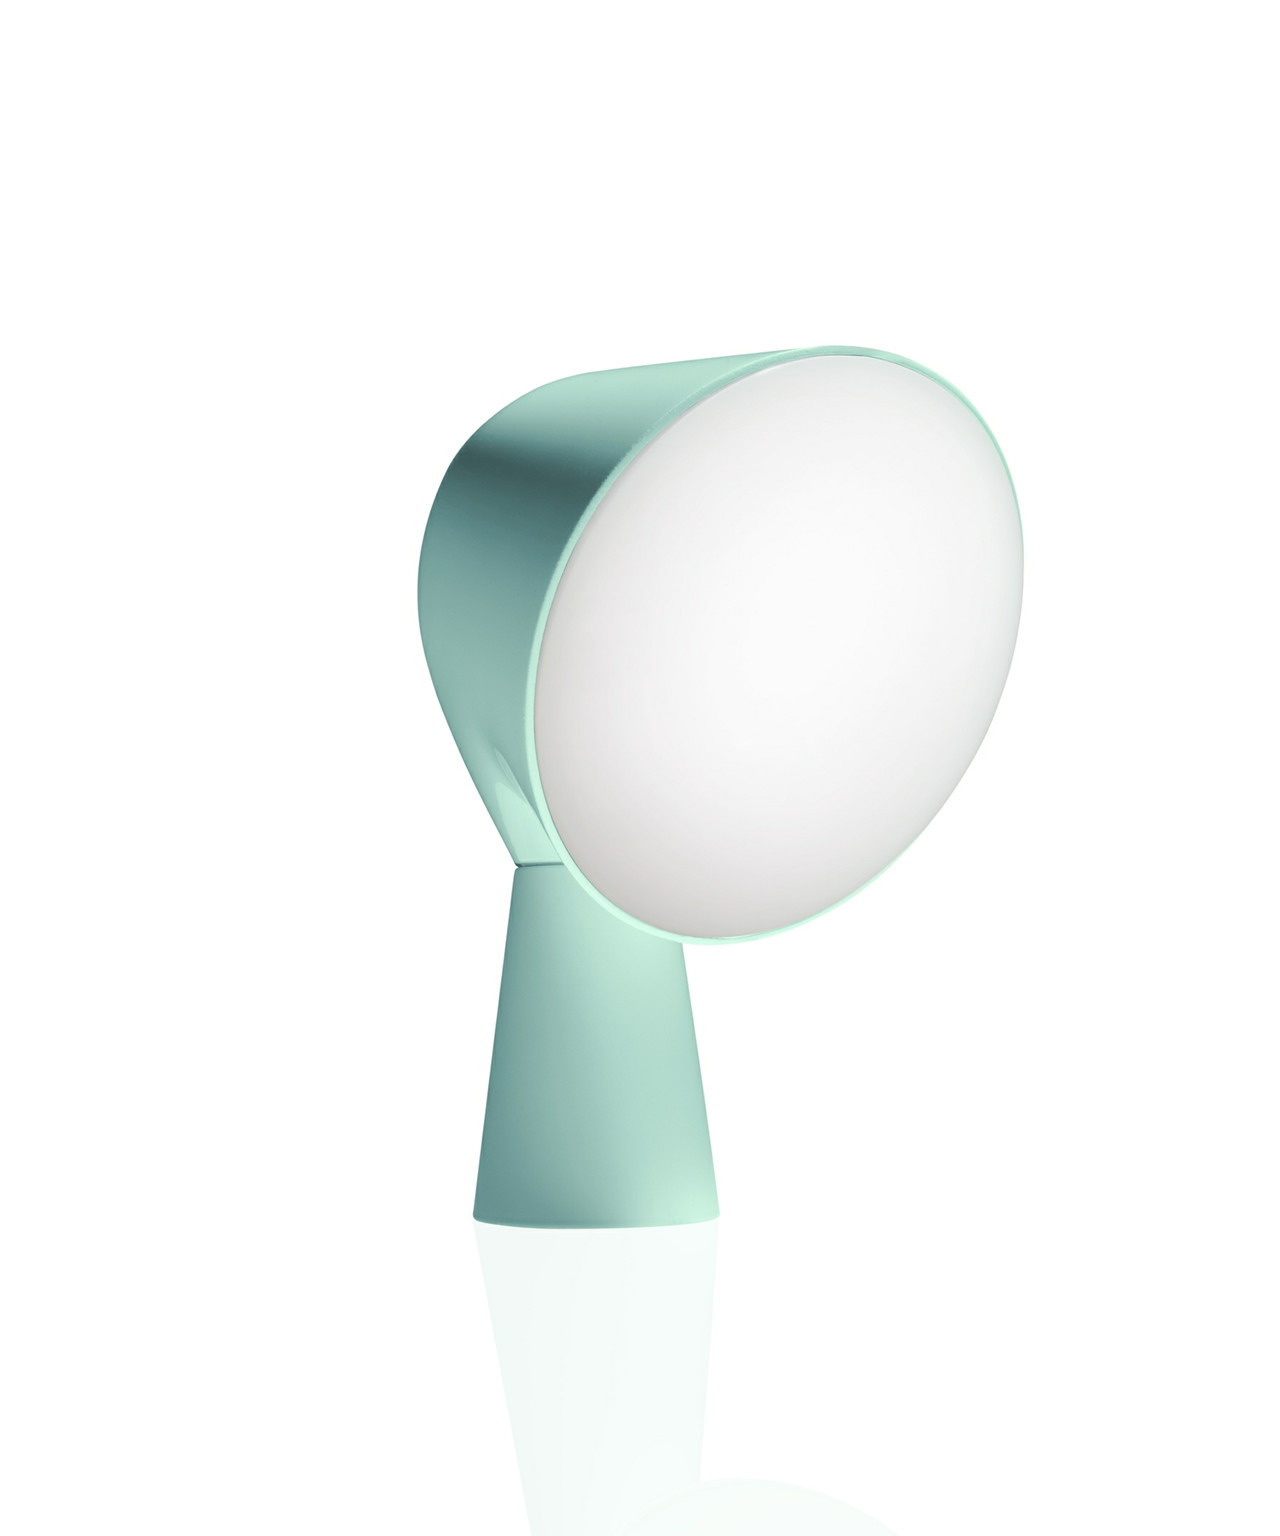 Image of   Binic Bordlampe Aqua - Foscarini